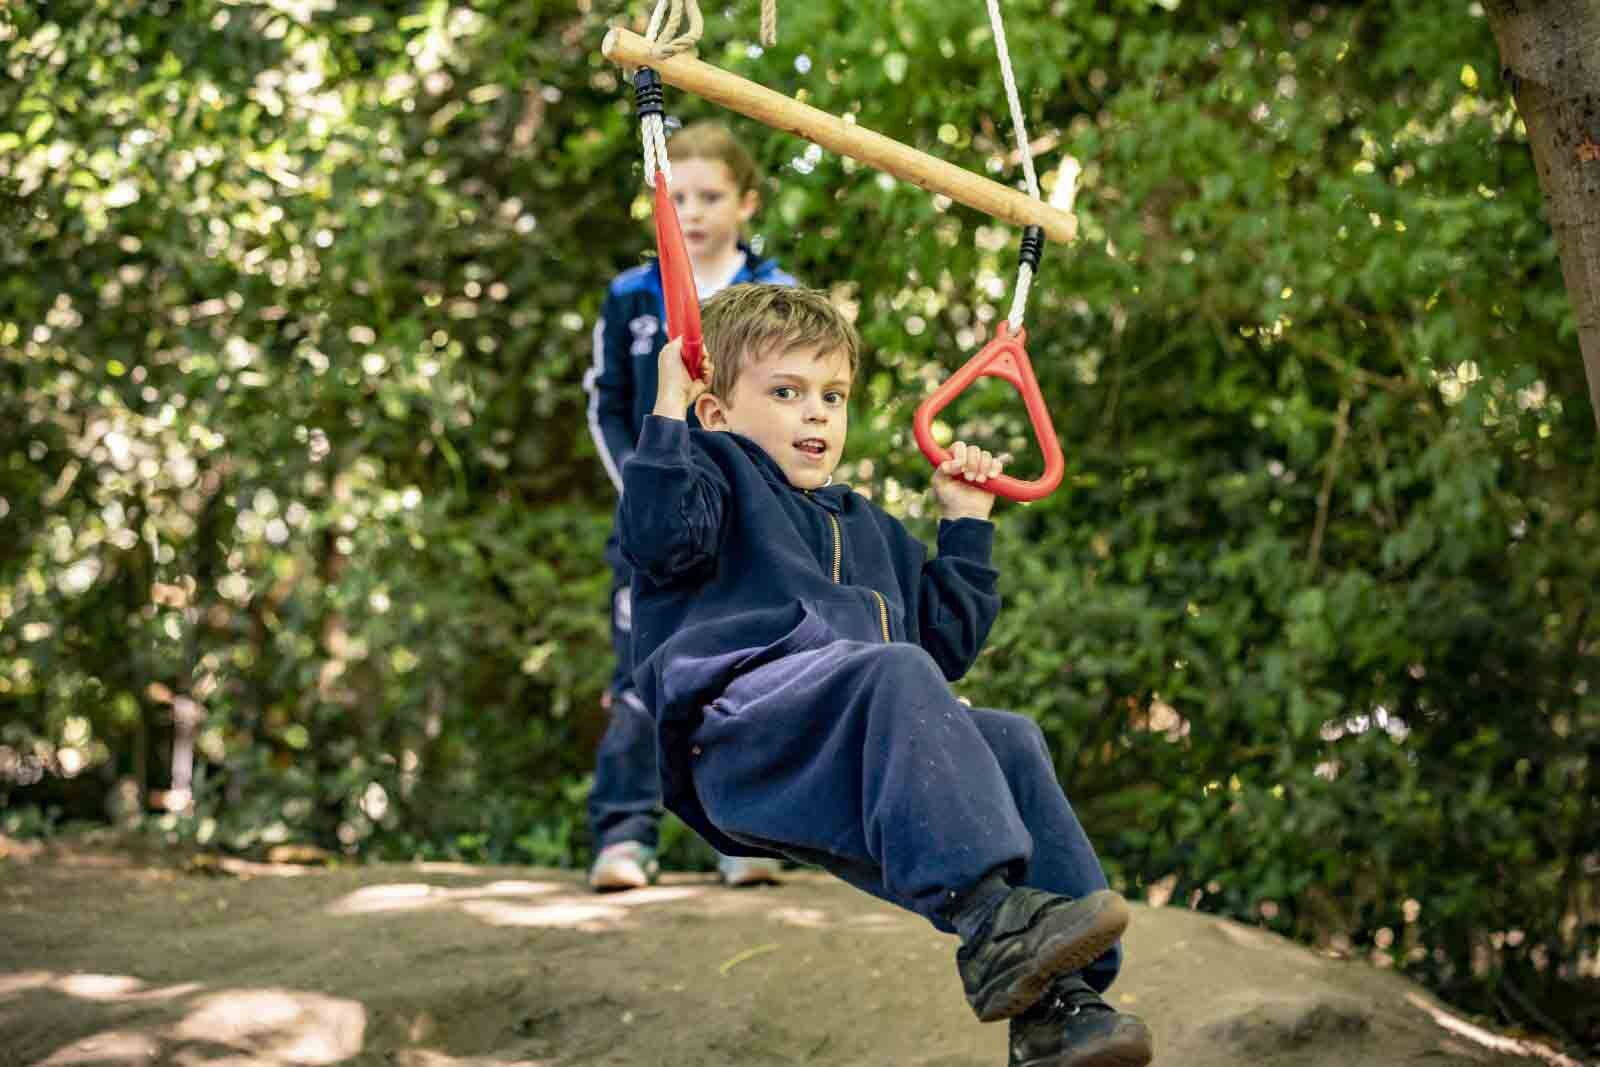 """Charlie, Year 3 - """"In Forest School, at the end of term we had a fire and Nutella and s'mores. It was really good."""""""